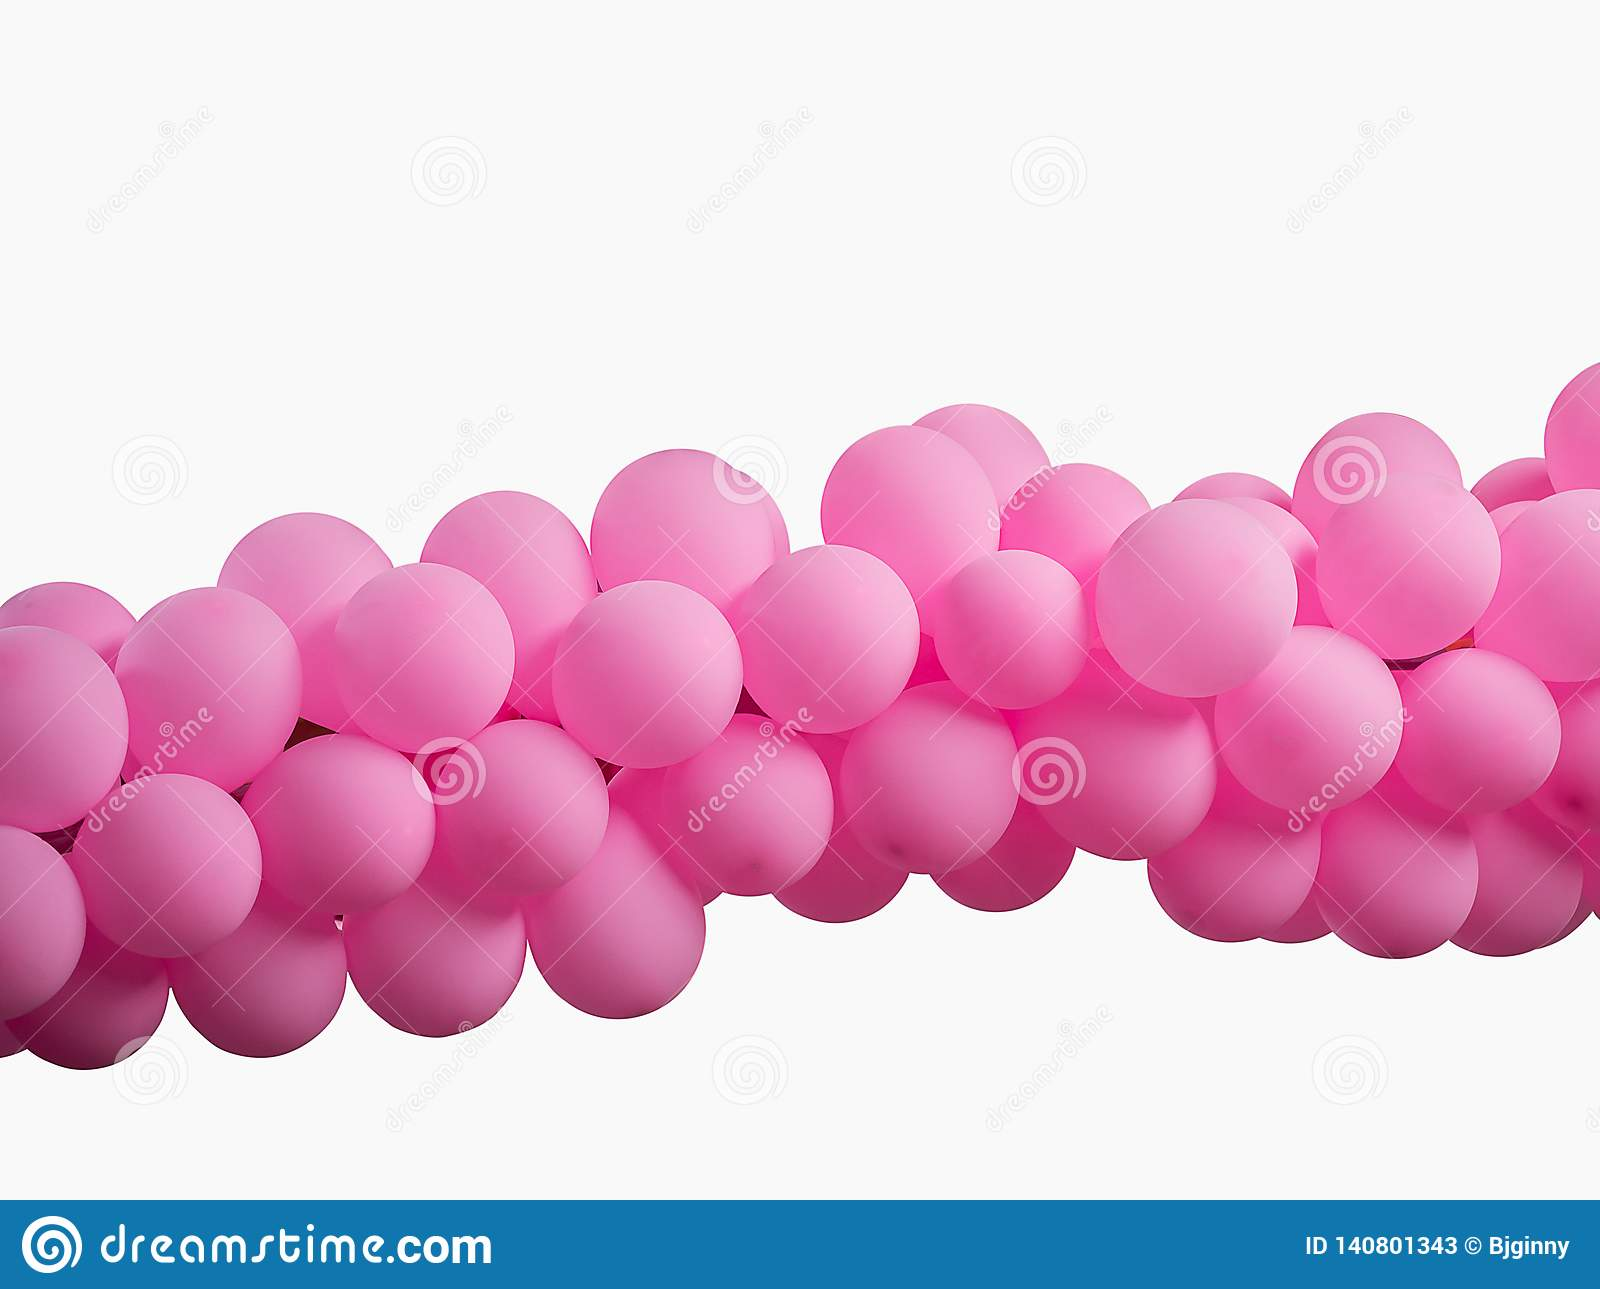 Pink color decorated balloons in a row over white background